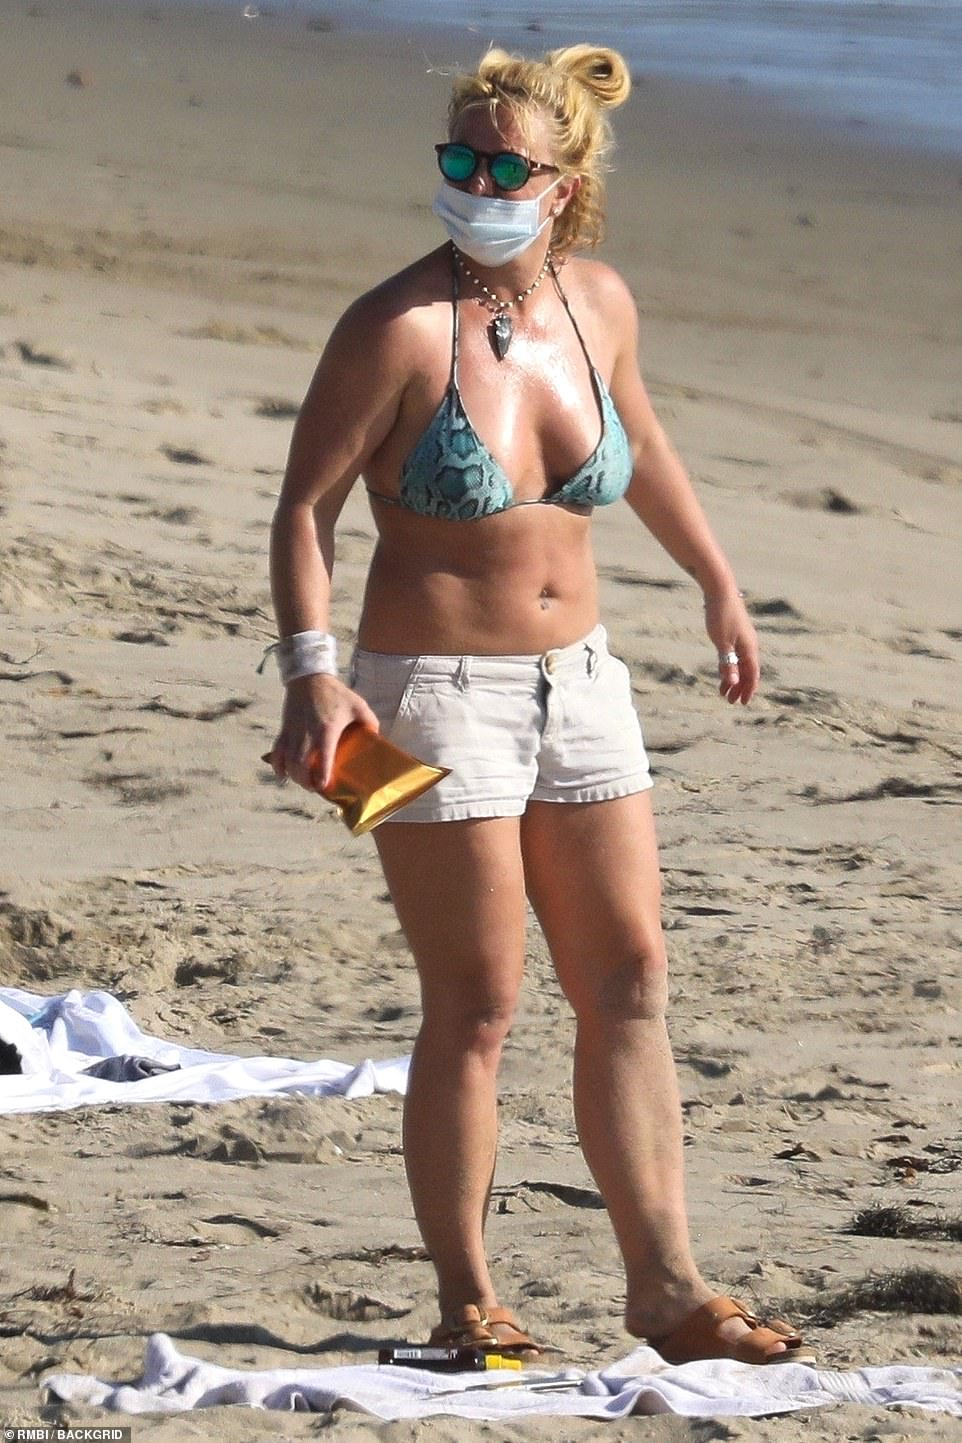 Britney Spears swimsuit displayed